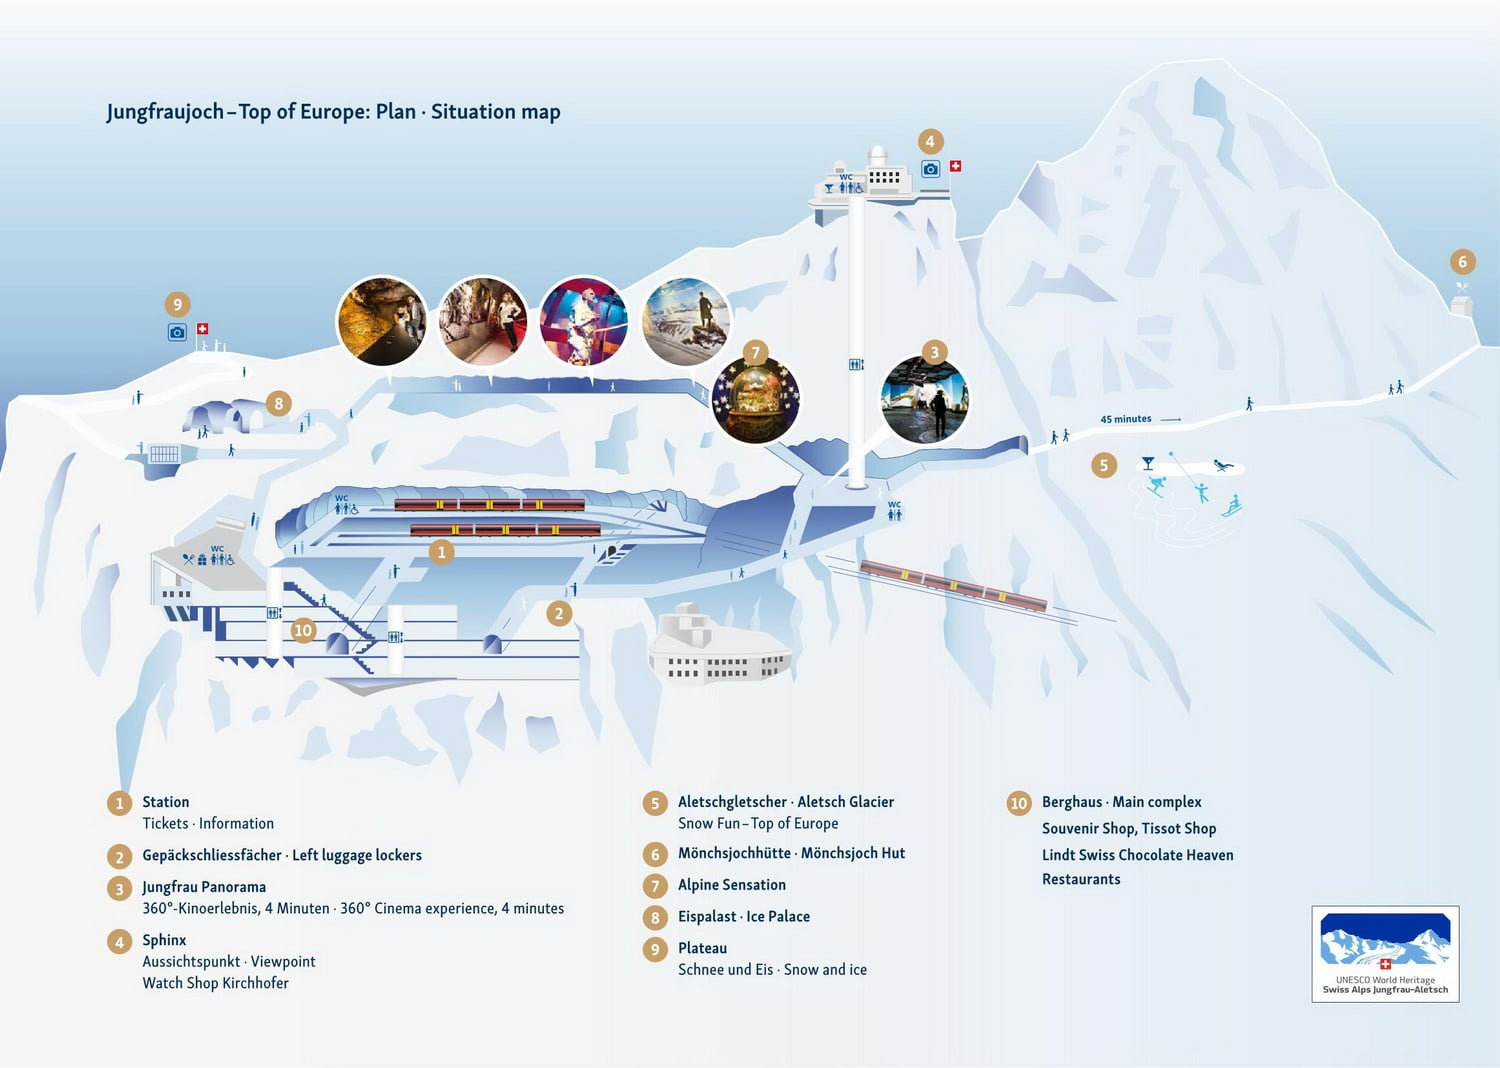 Jungfraujoch plan attractions